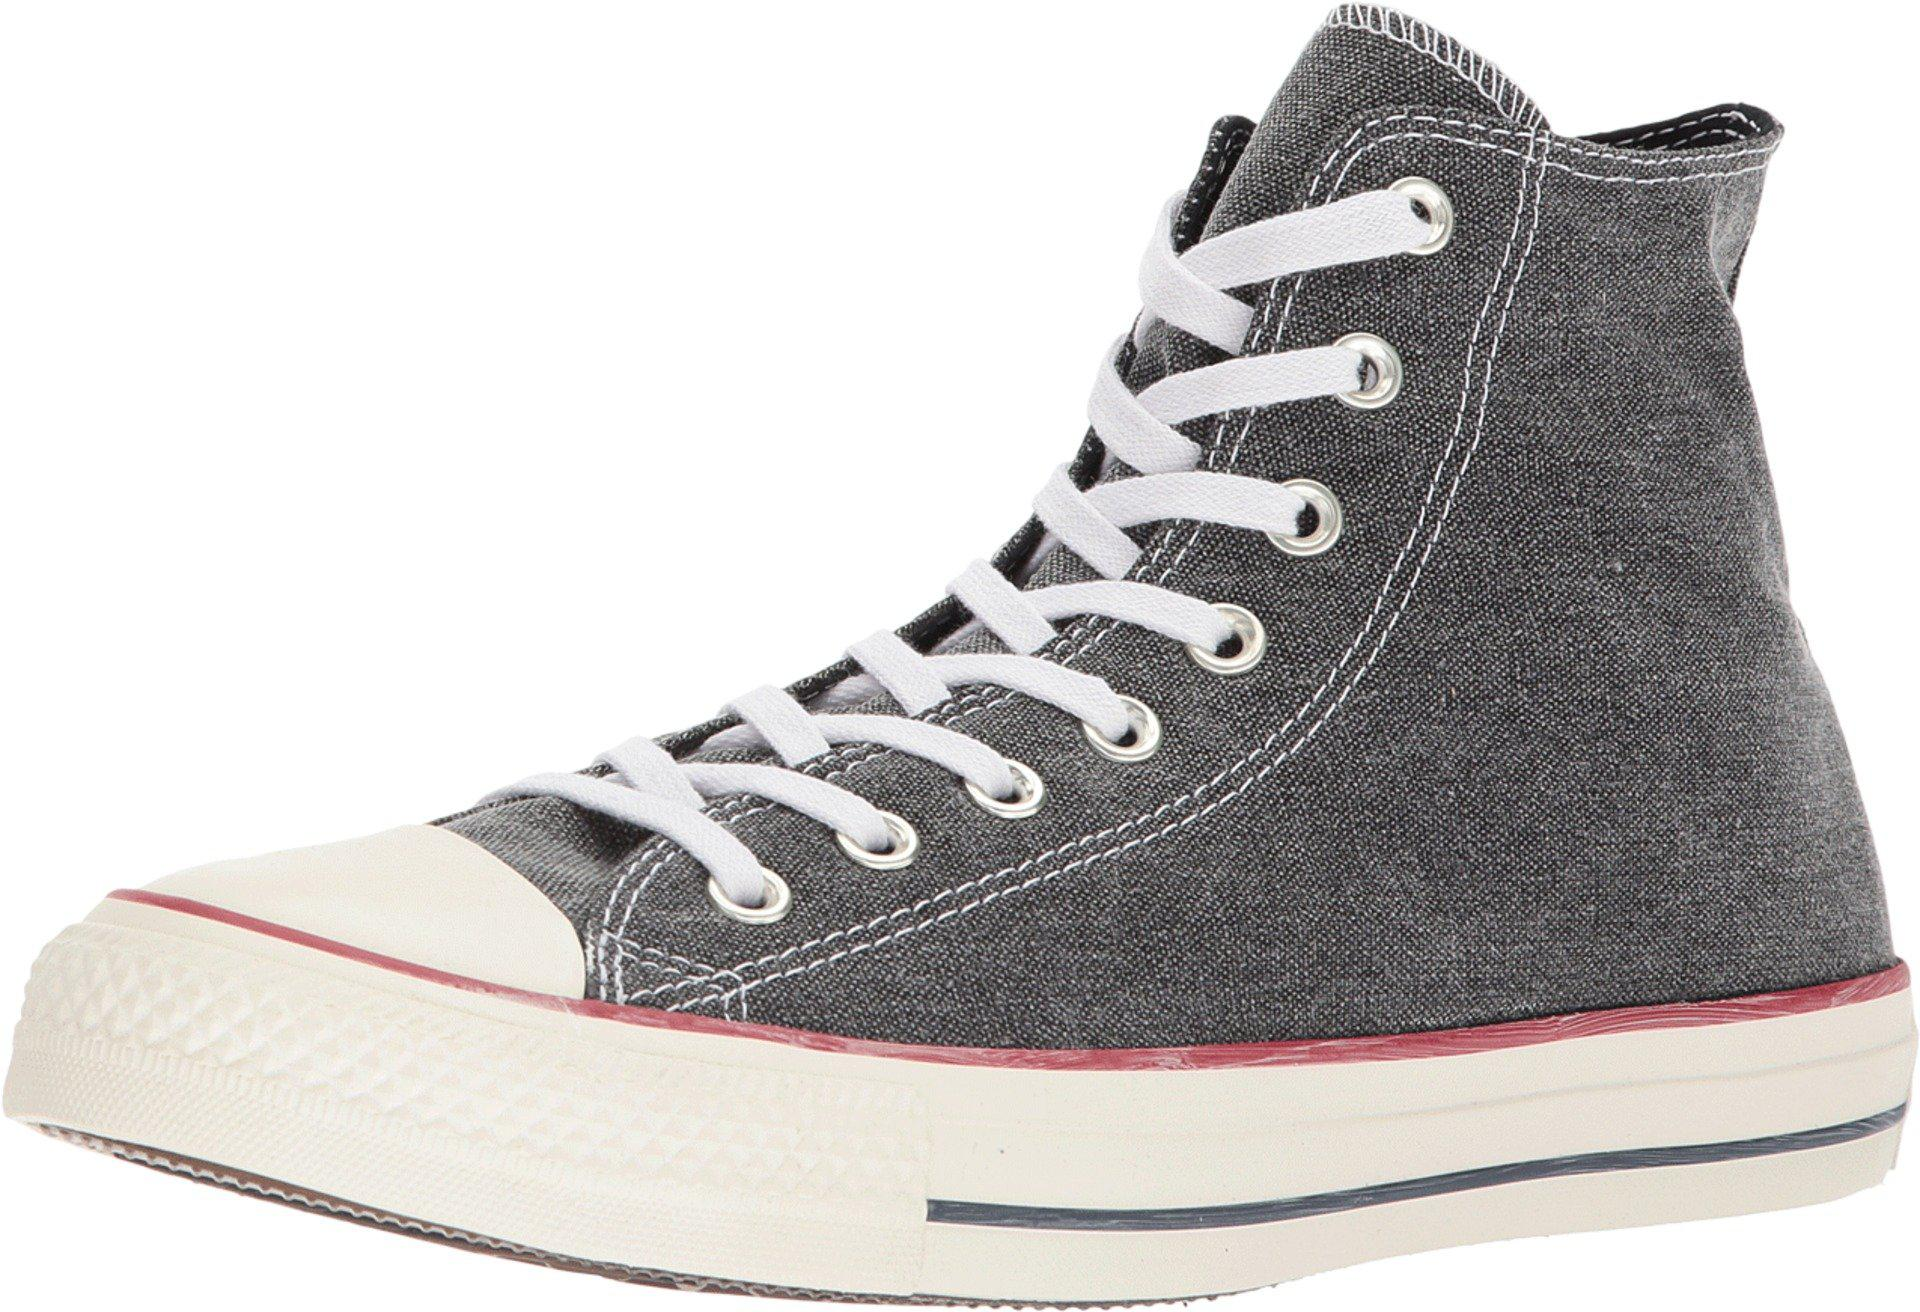 9f06b11477e Gallery. Previously sold at  Zappos · Women s Converse Chuck Taylor Women s Converse  Chuck Taylor All Star ...